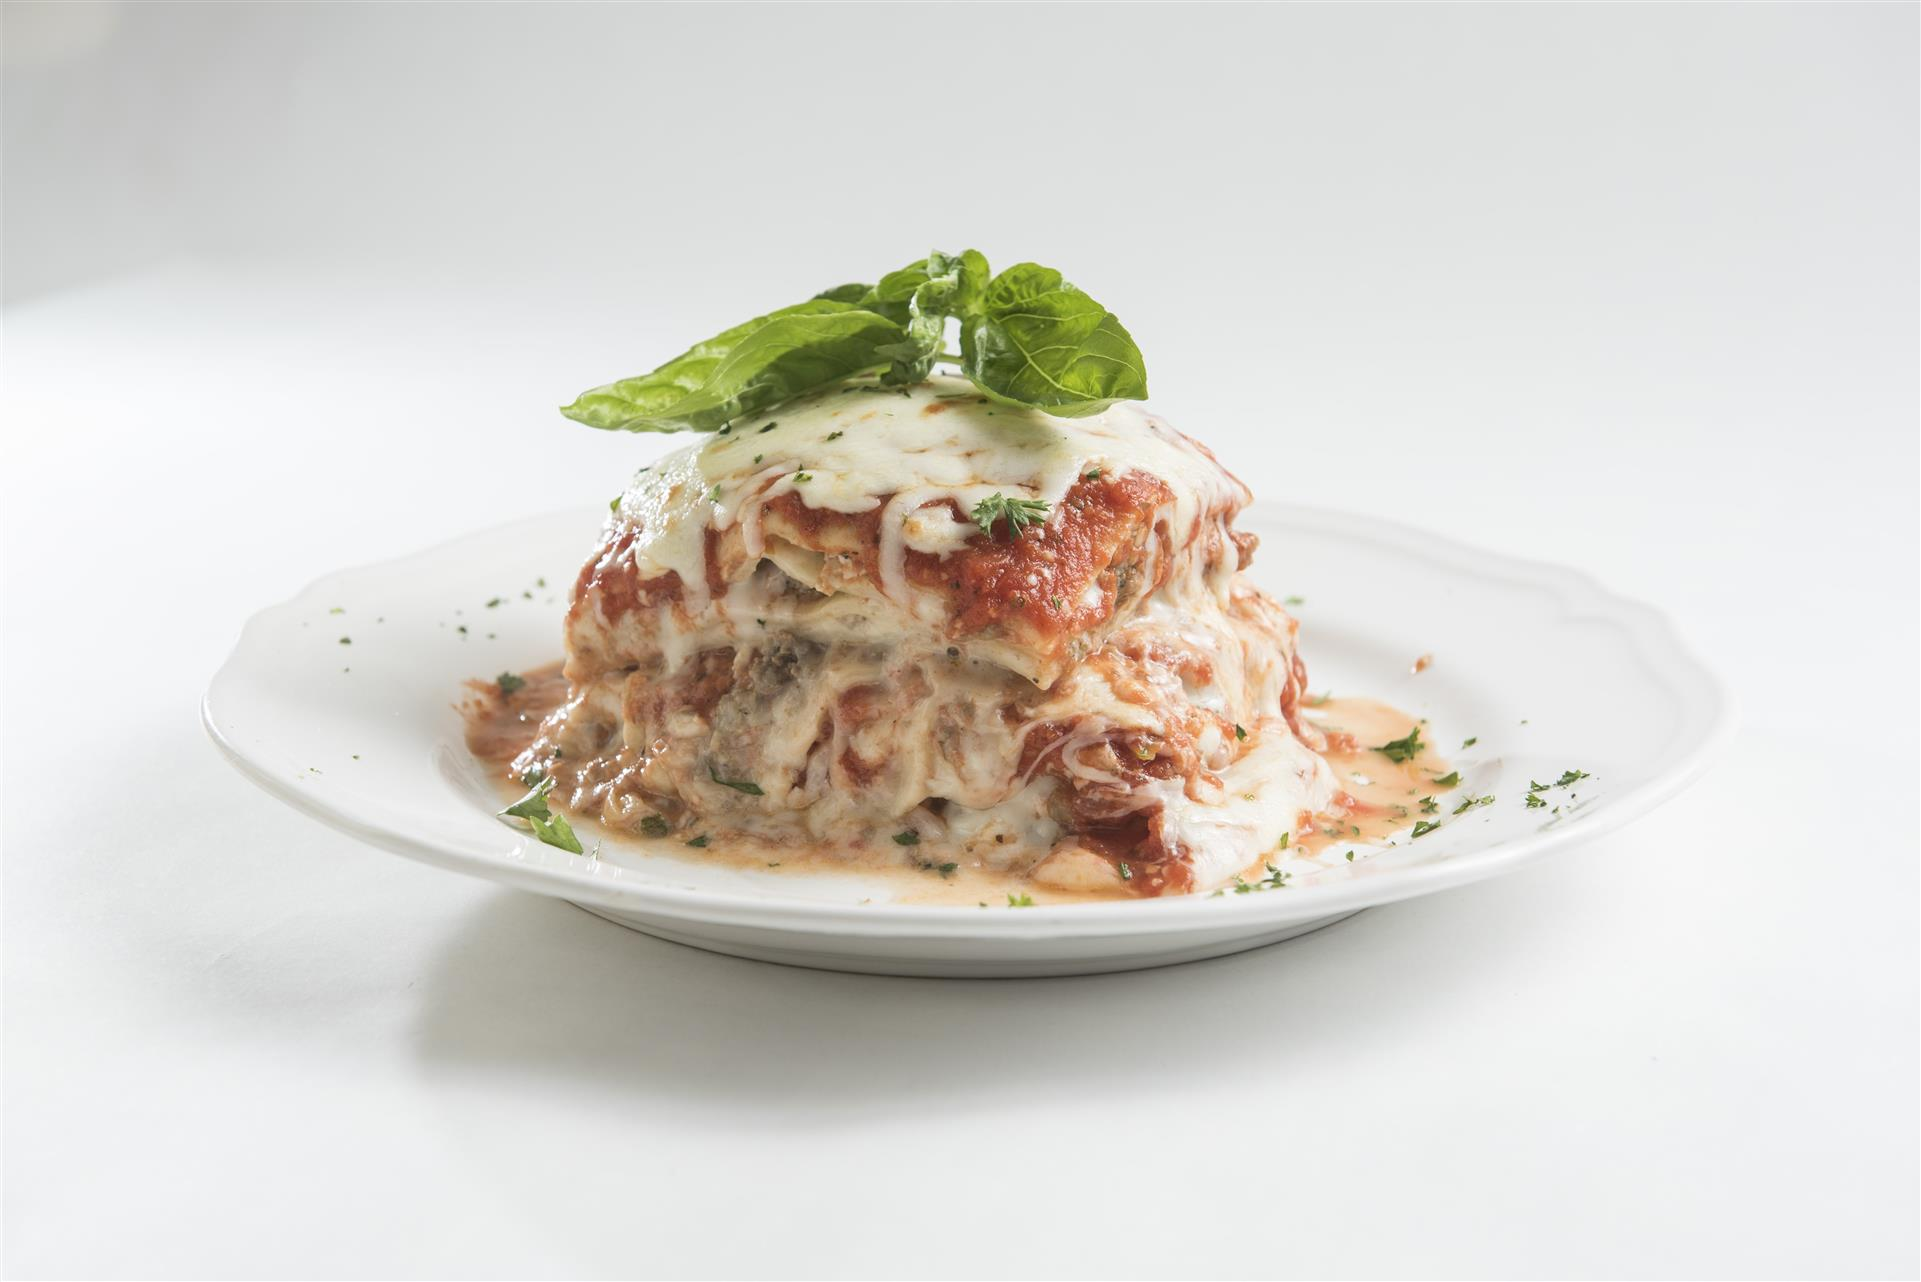 Lasagna topped with fresh basil on a plate